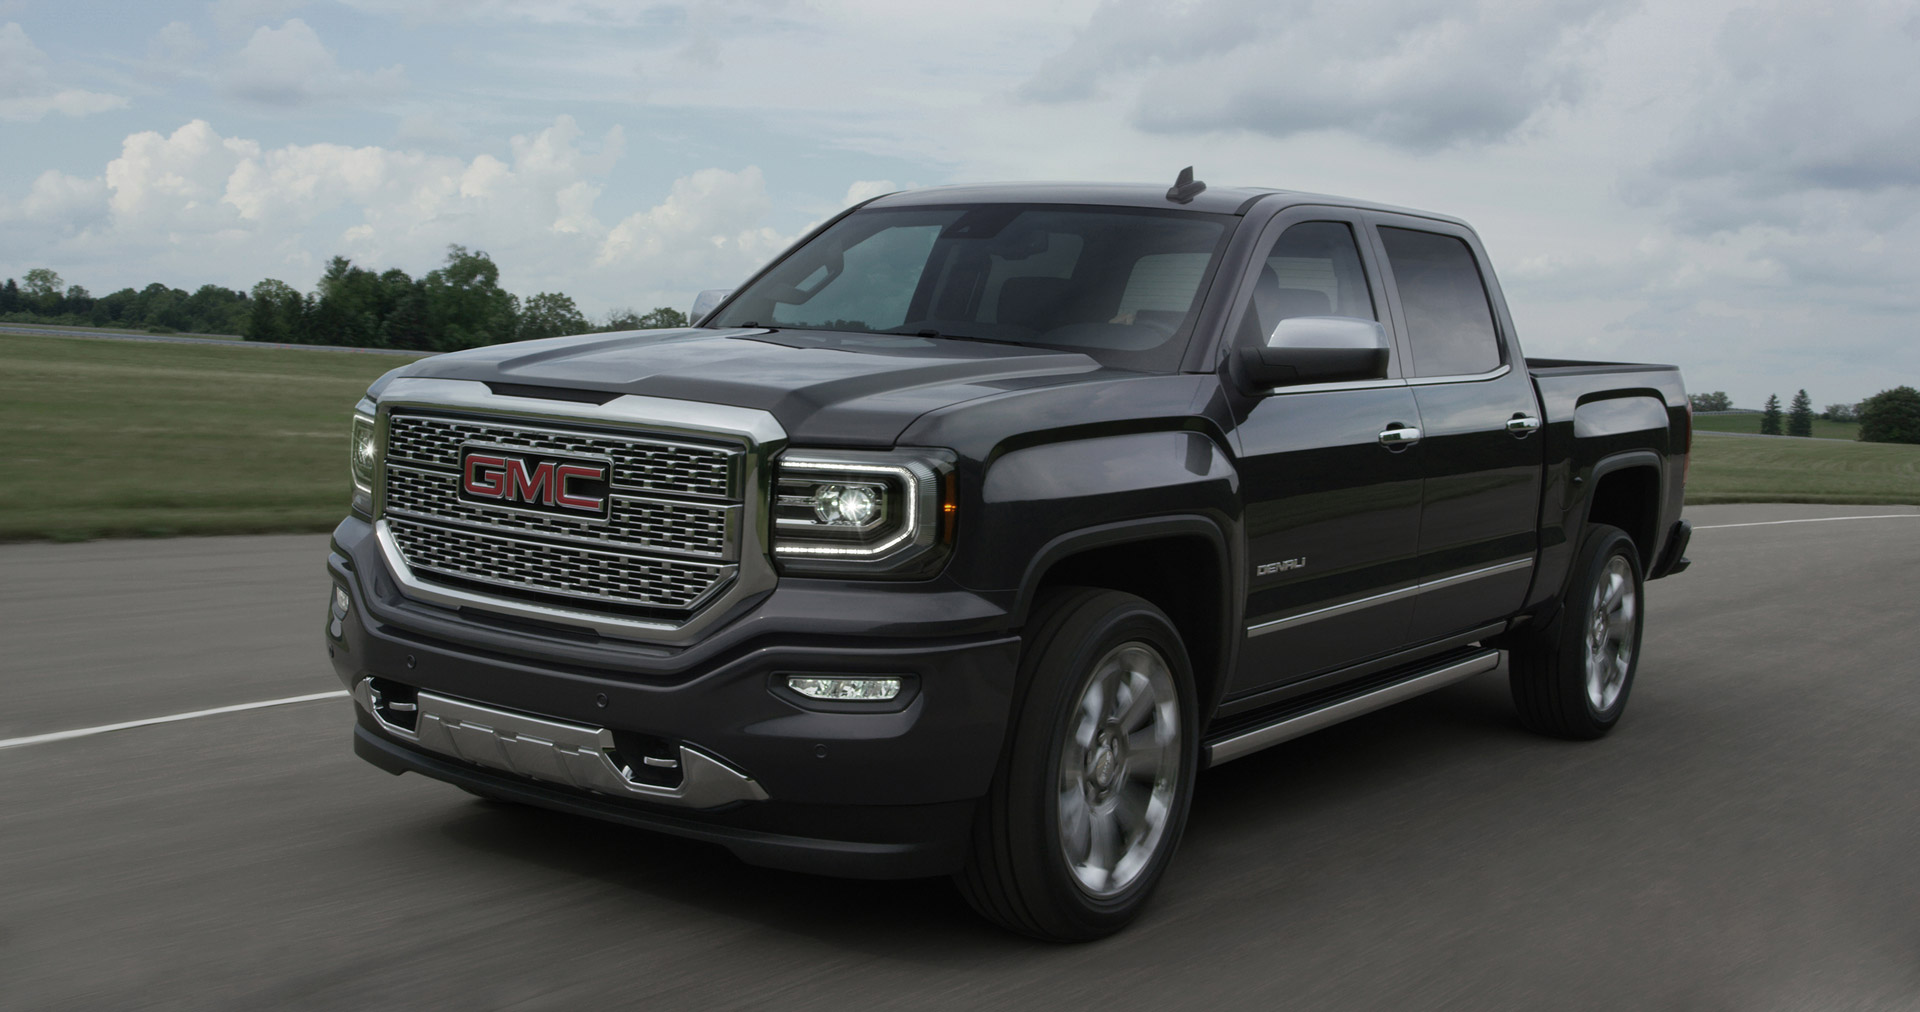 trucks denali sierra sport yukon black car com ops concept down on doubles exhaust rendering suv revs future daily terrain gmc hero all x leds vip